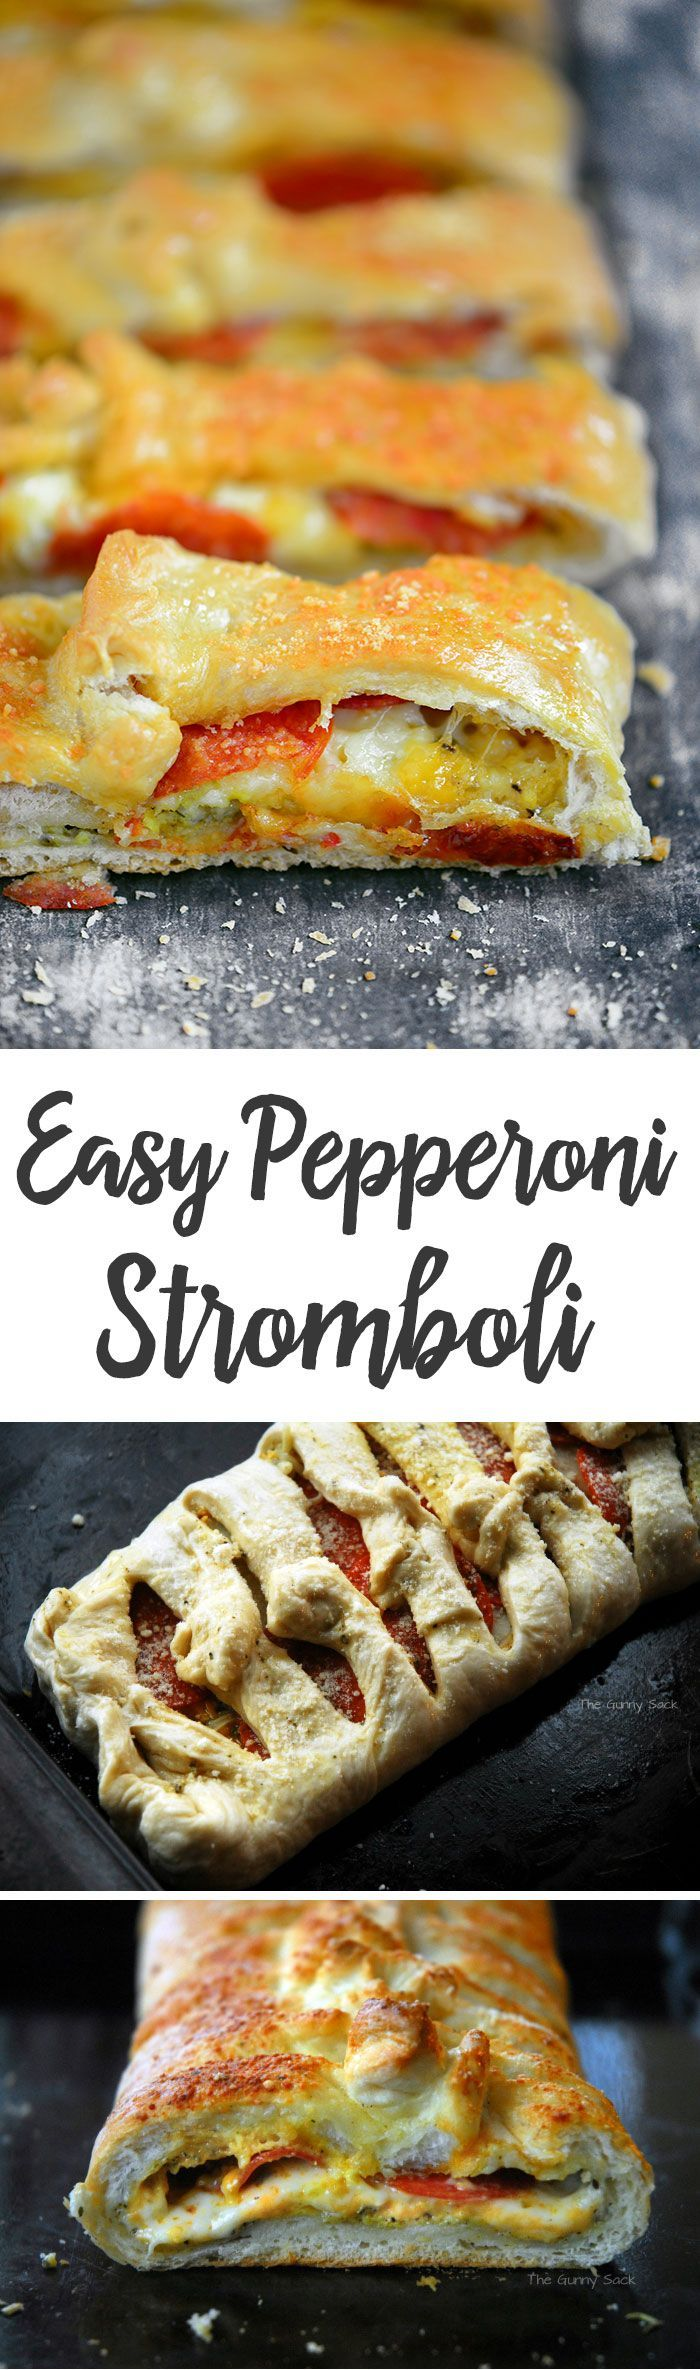 This Easy Pepperoni Stromboli recipe is a family favorite. Crave-worthy bread dough wrapped around layers of cheese and pepperoni!